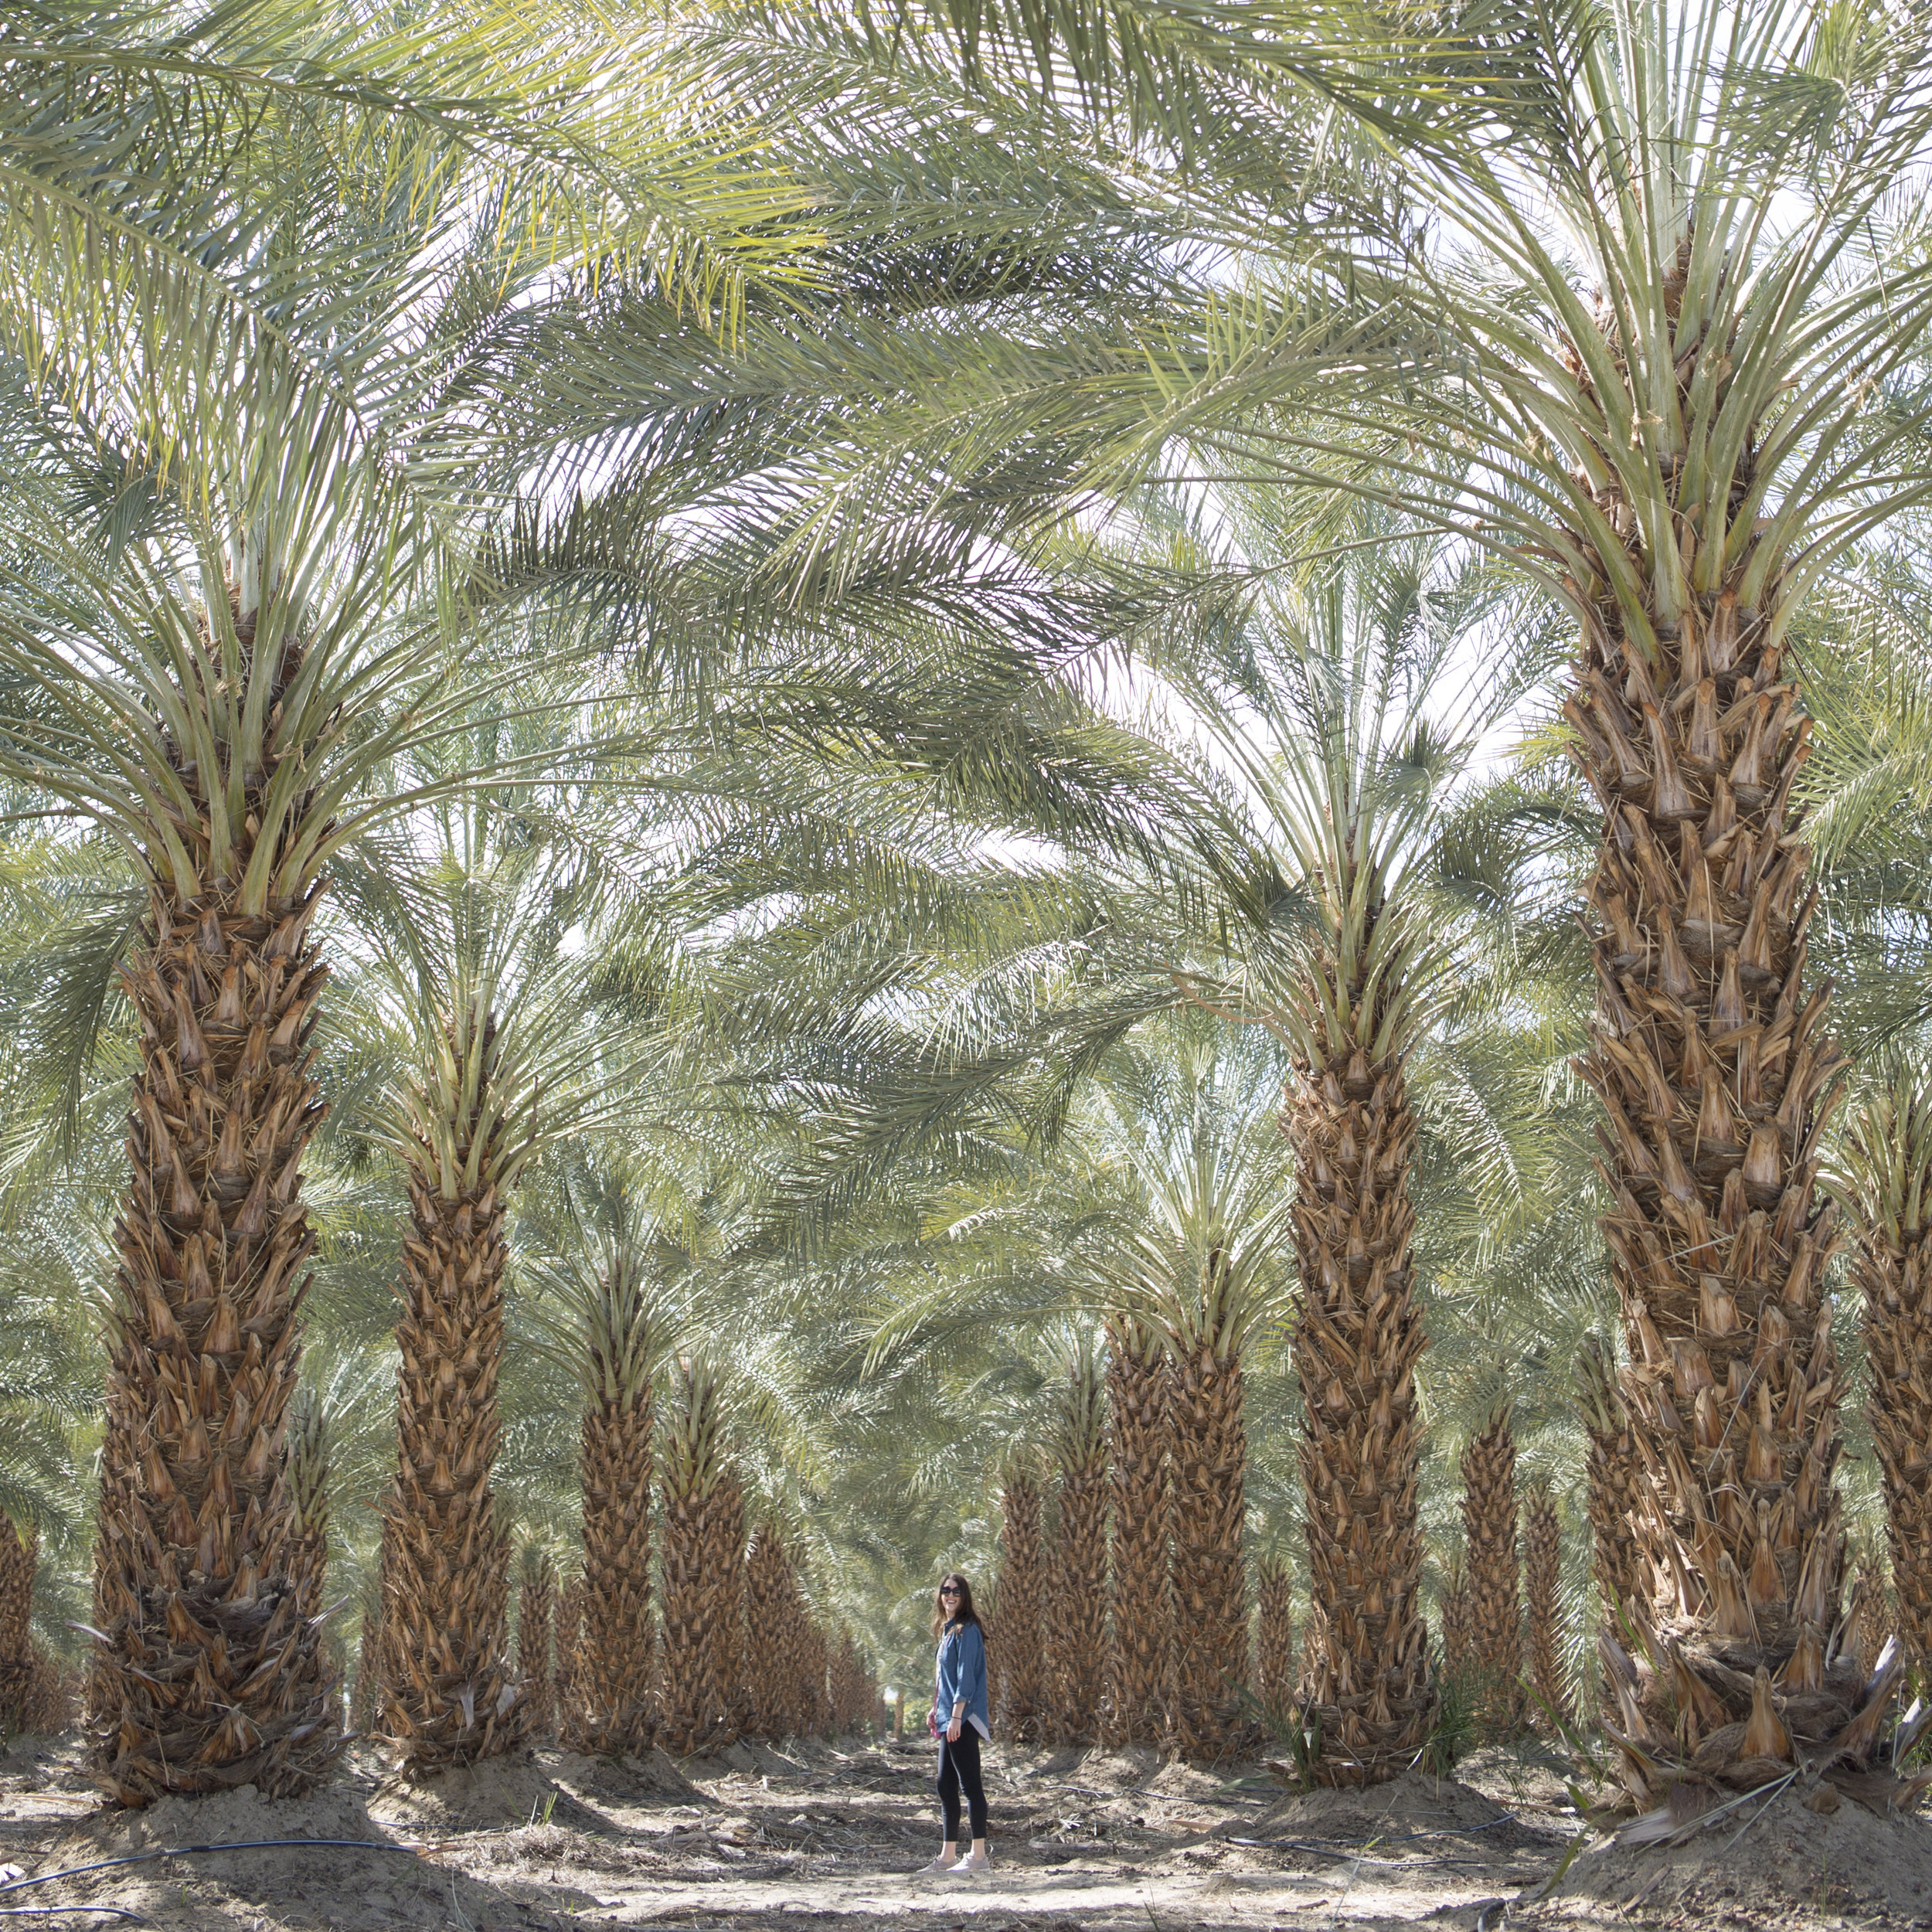 This palm tree farm was my fav! I've never seen anything so vast and magnificent. image by @lizzie_darden